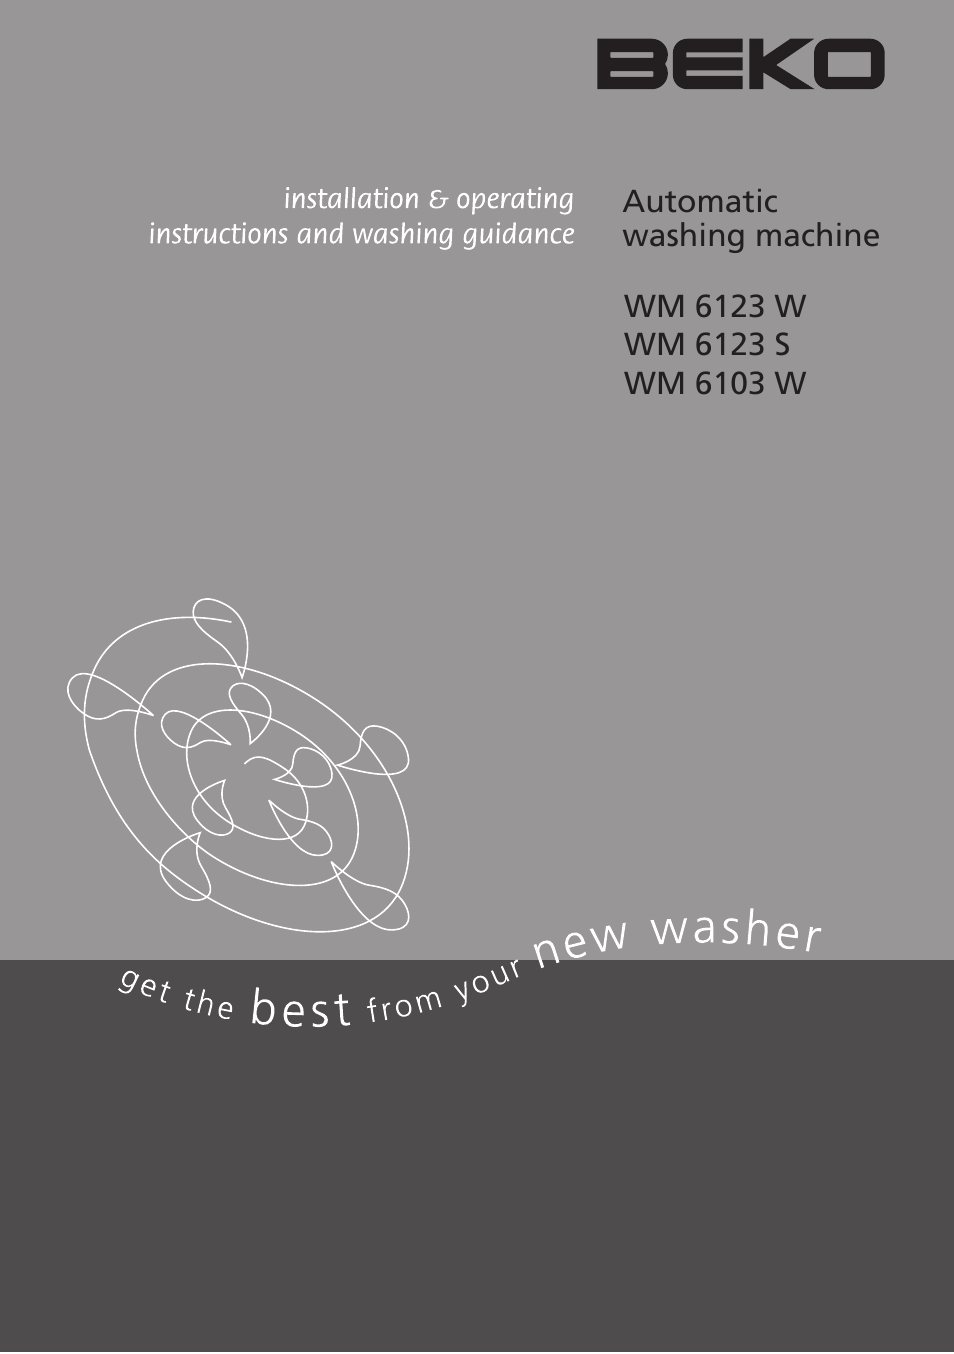 beko wm 6123 s user manual